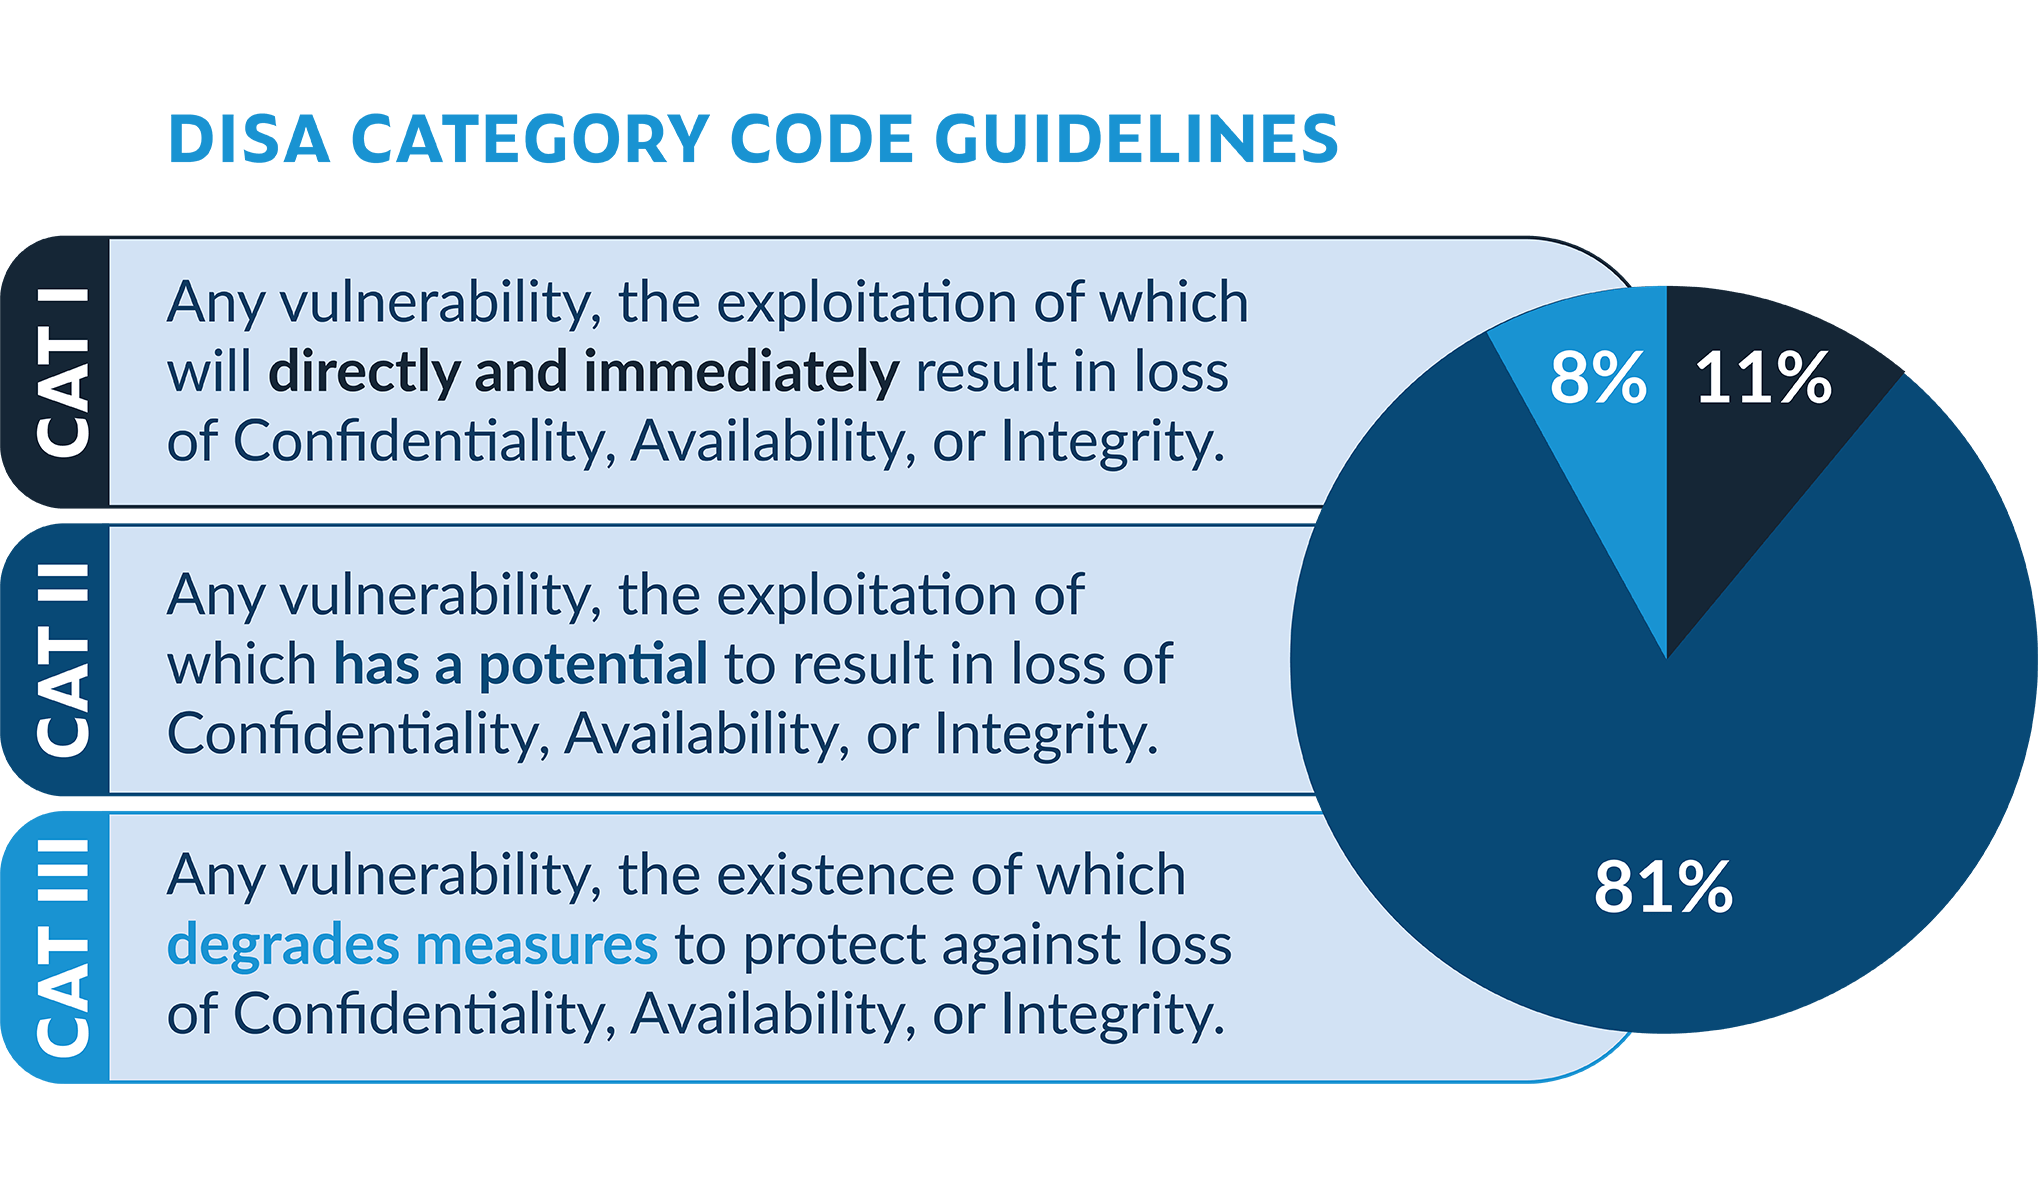 Infographic listing DISA category code guidelines for Categories I (11%), II (81%), III (8%).